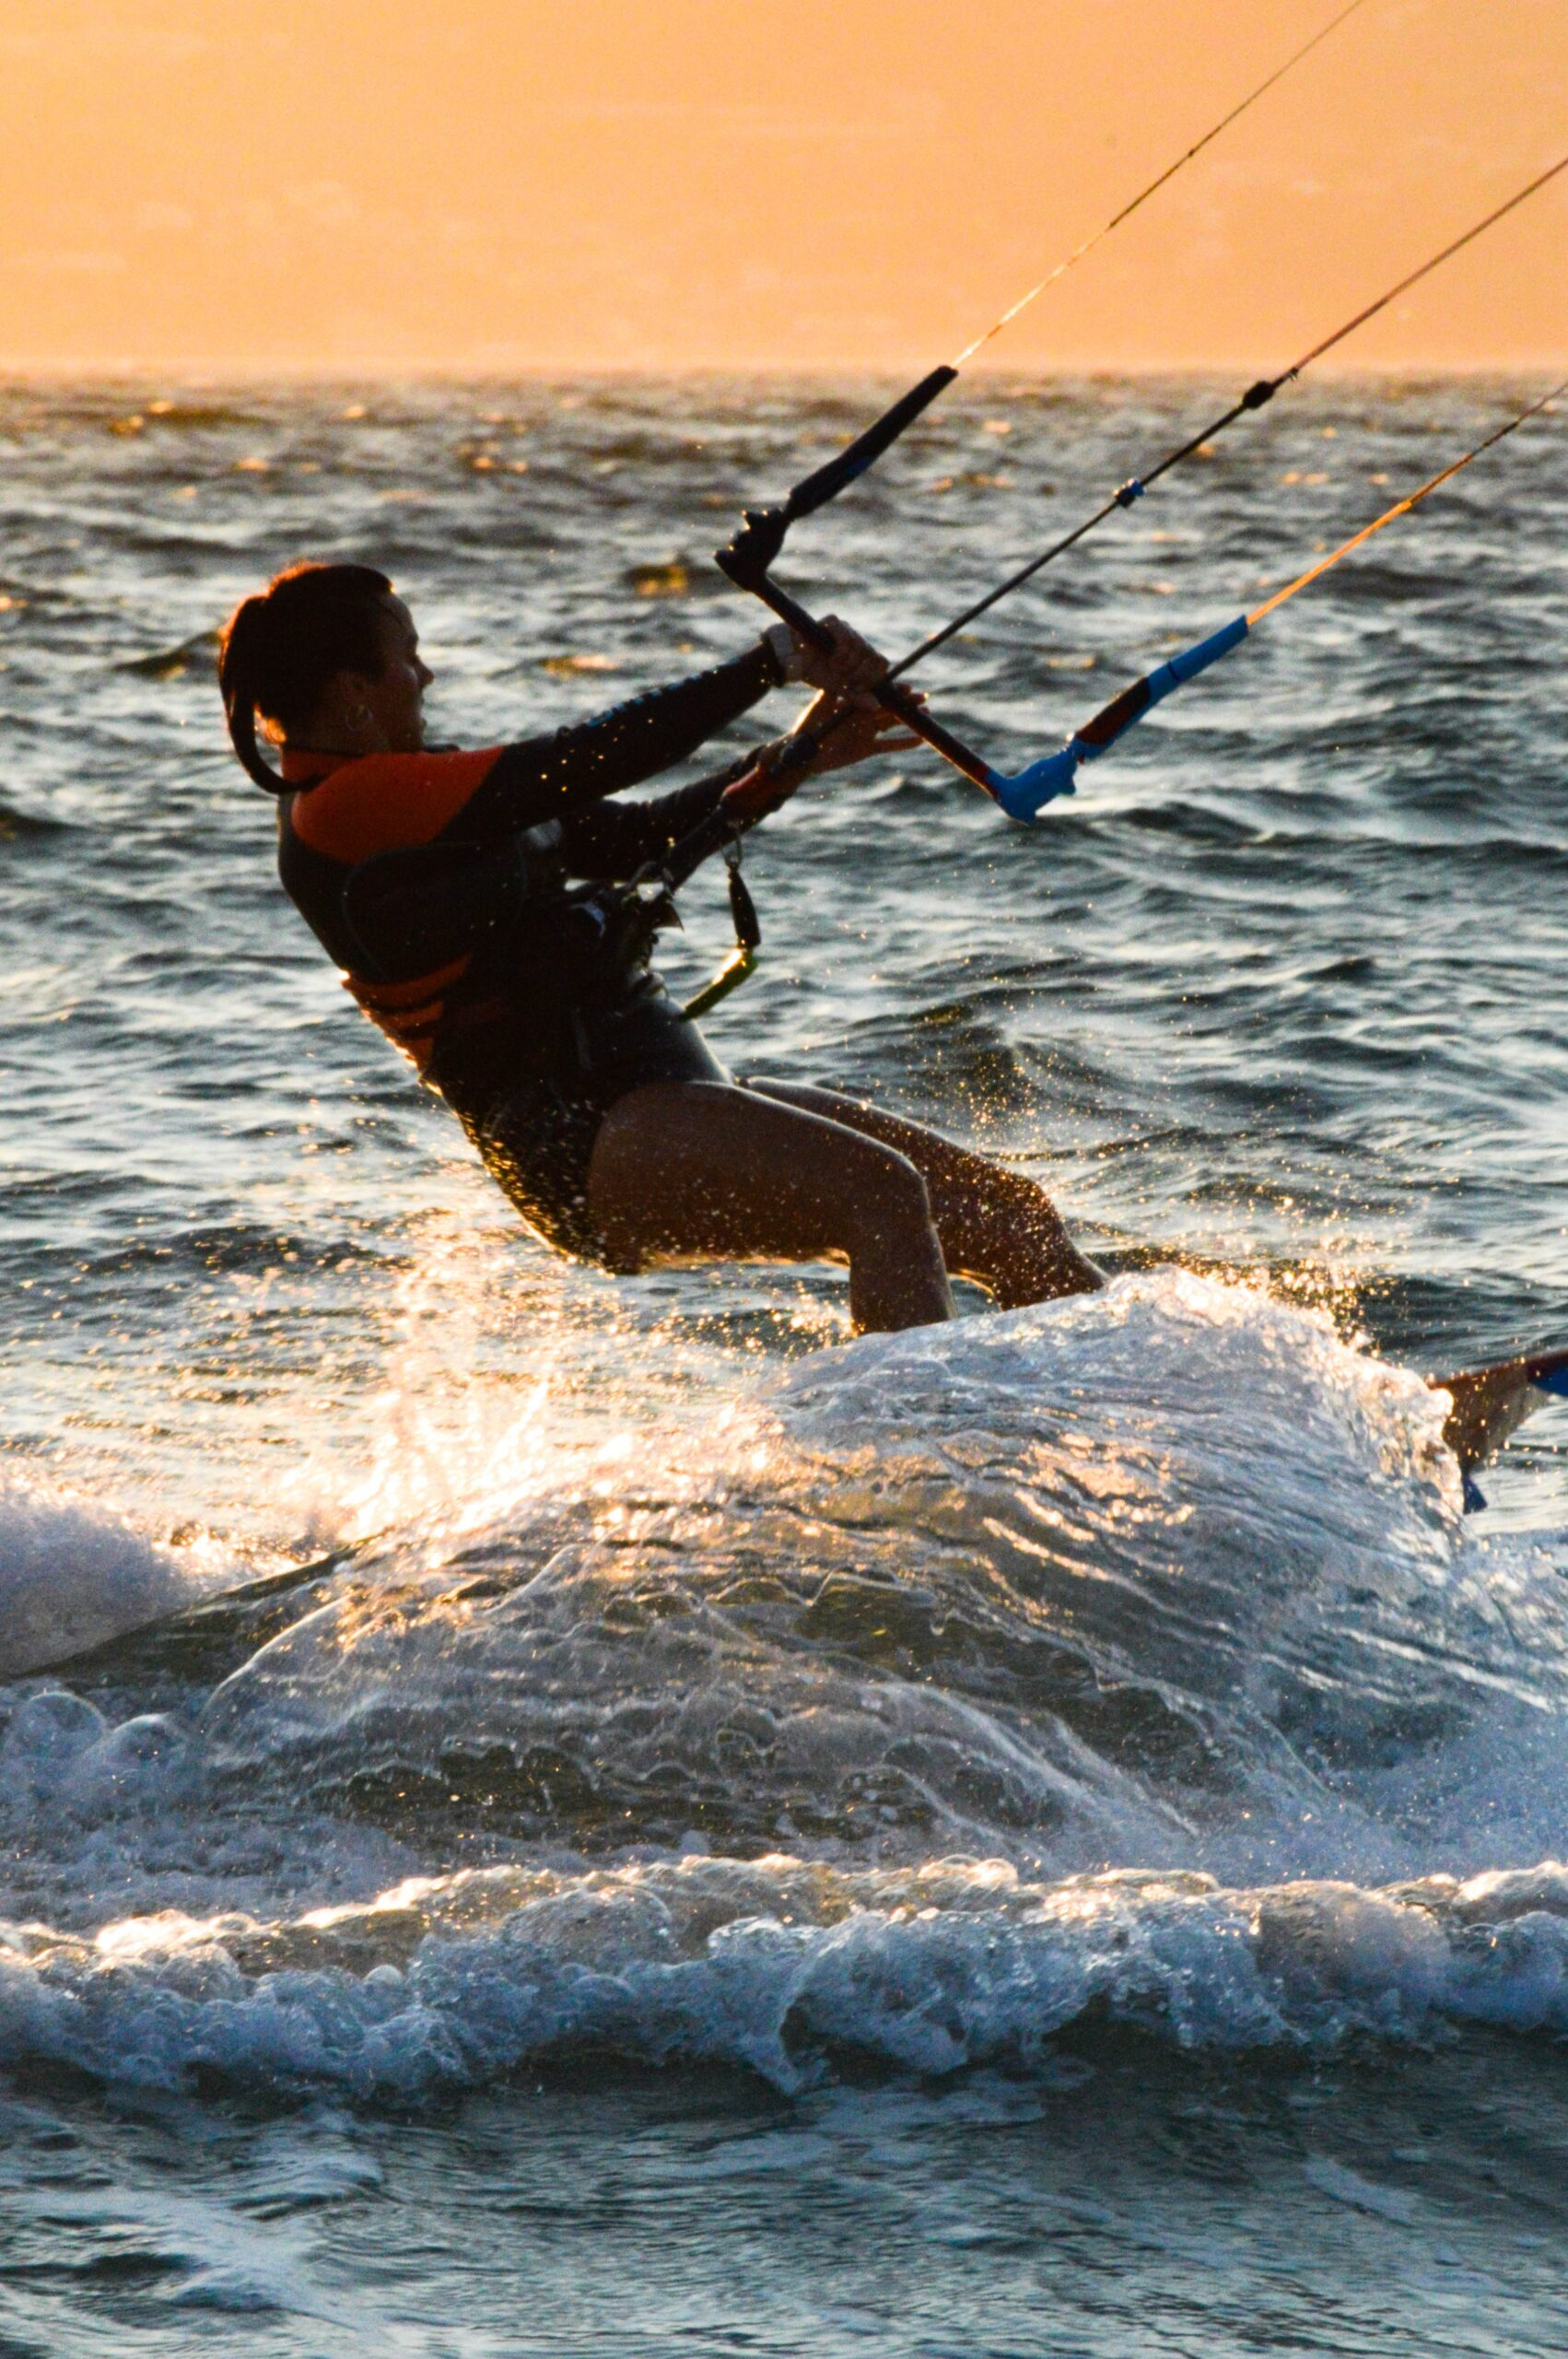 A woman practicing kitesurfing in the sea, at sunset.